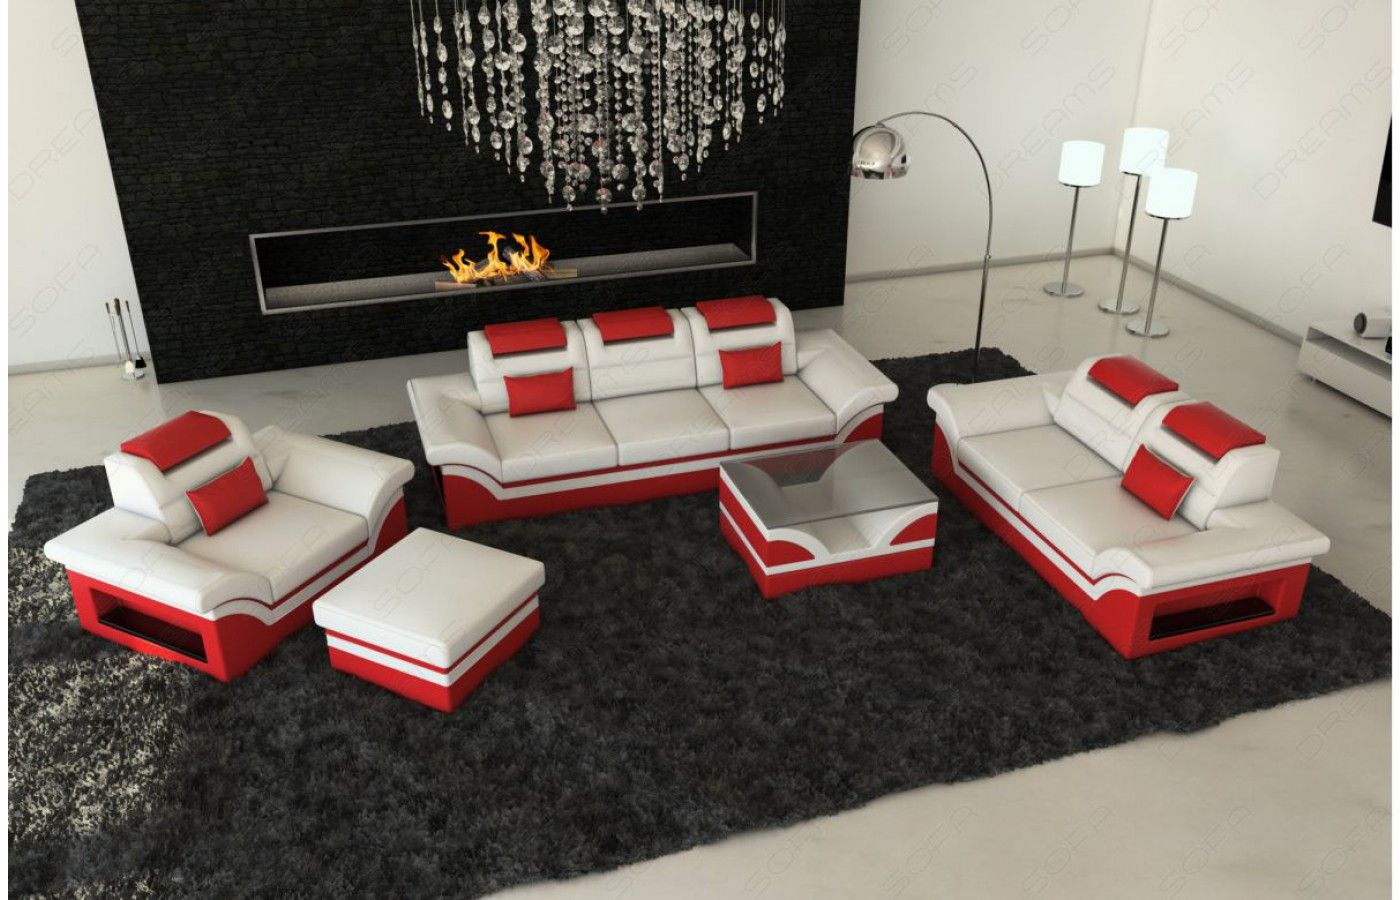 als bez ge verwenden wir f r die sofa garnitur monza nur hochwertige materialien darunter. Black Bedroom Furniture Sets. Home Design Ideas